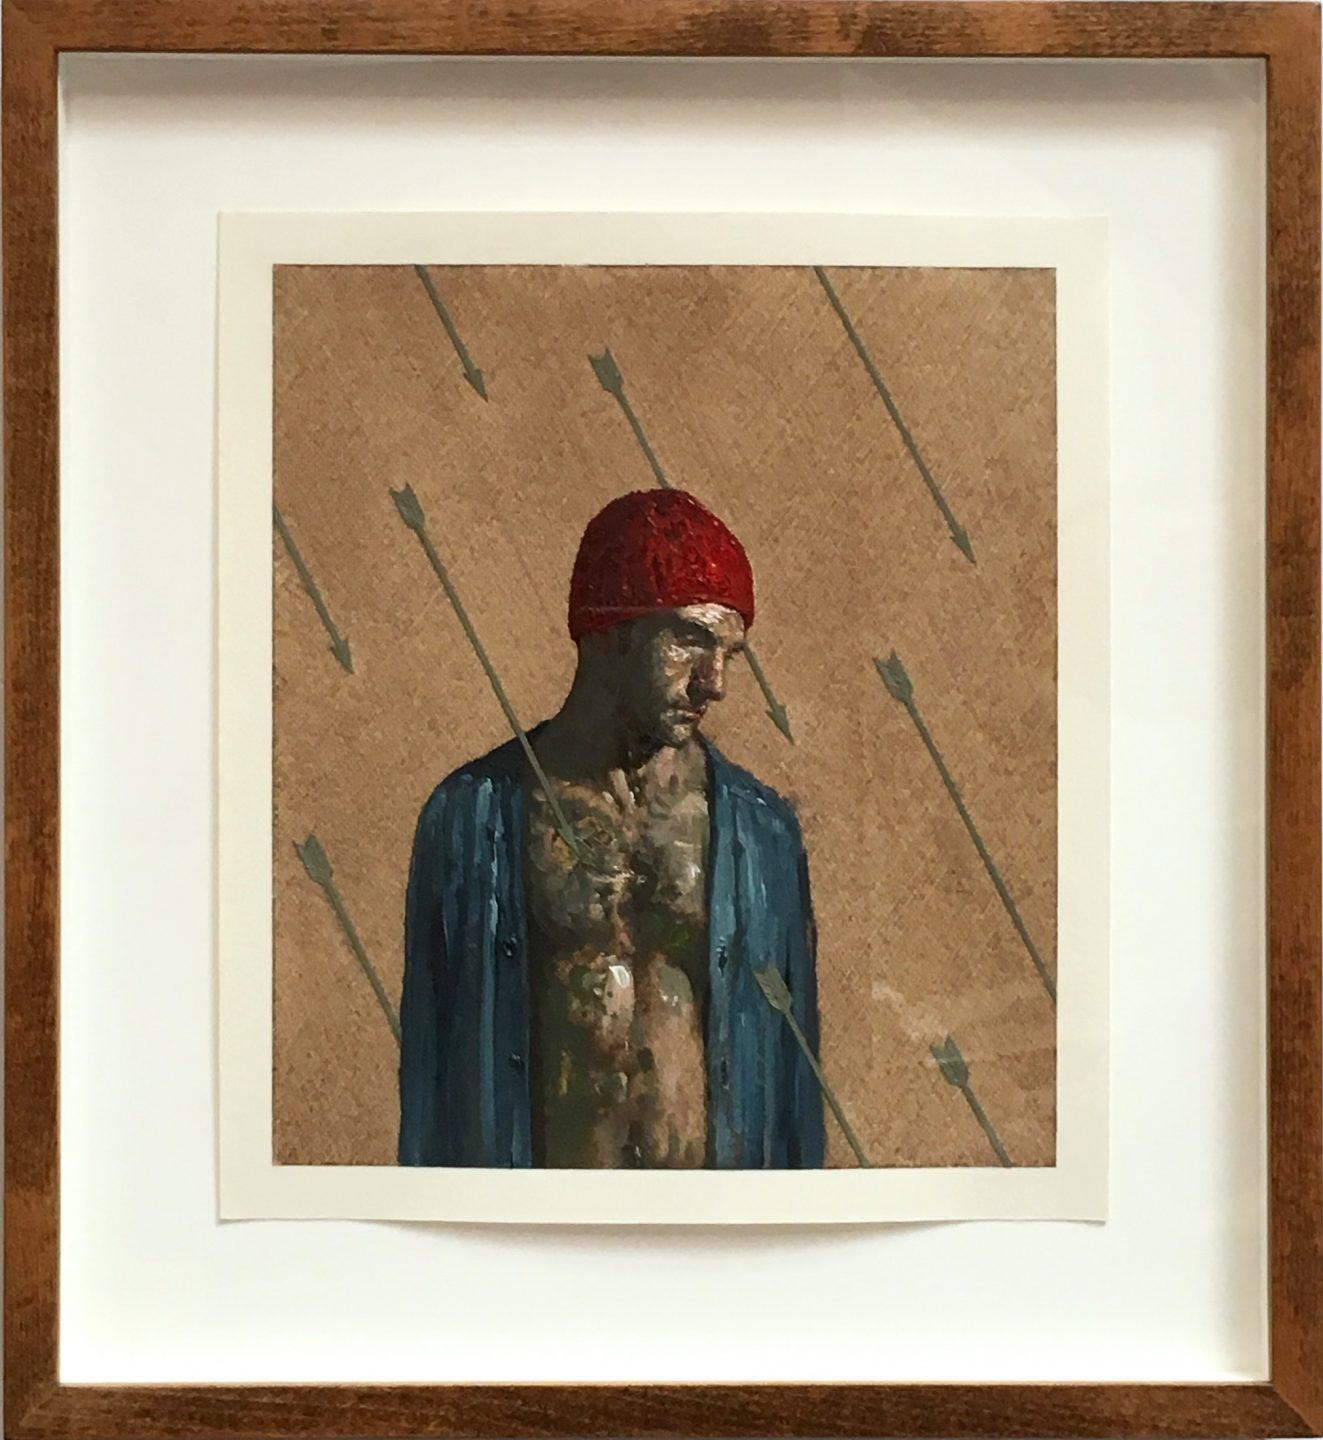 Williams Untitled Red Cap